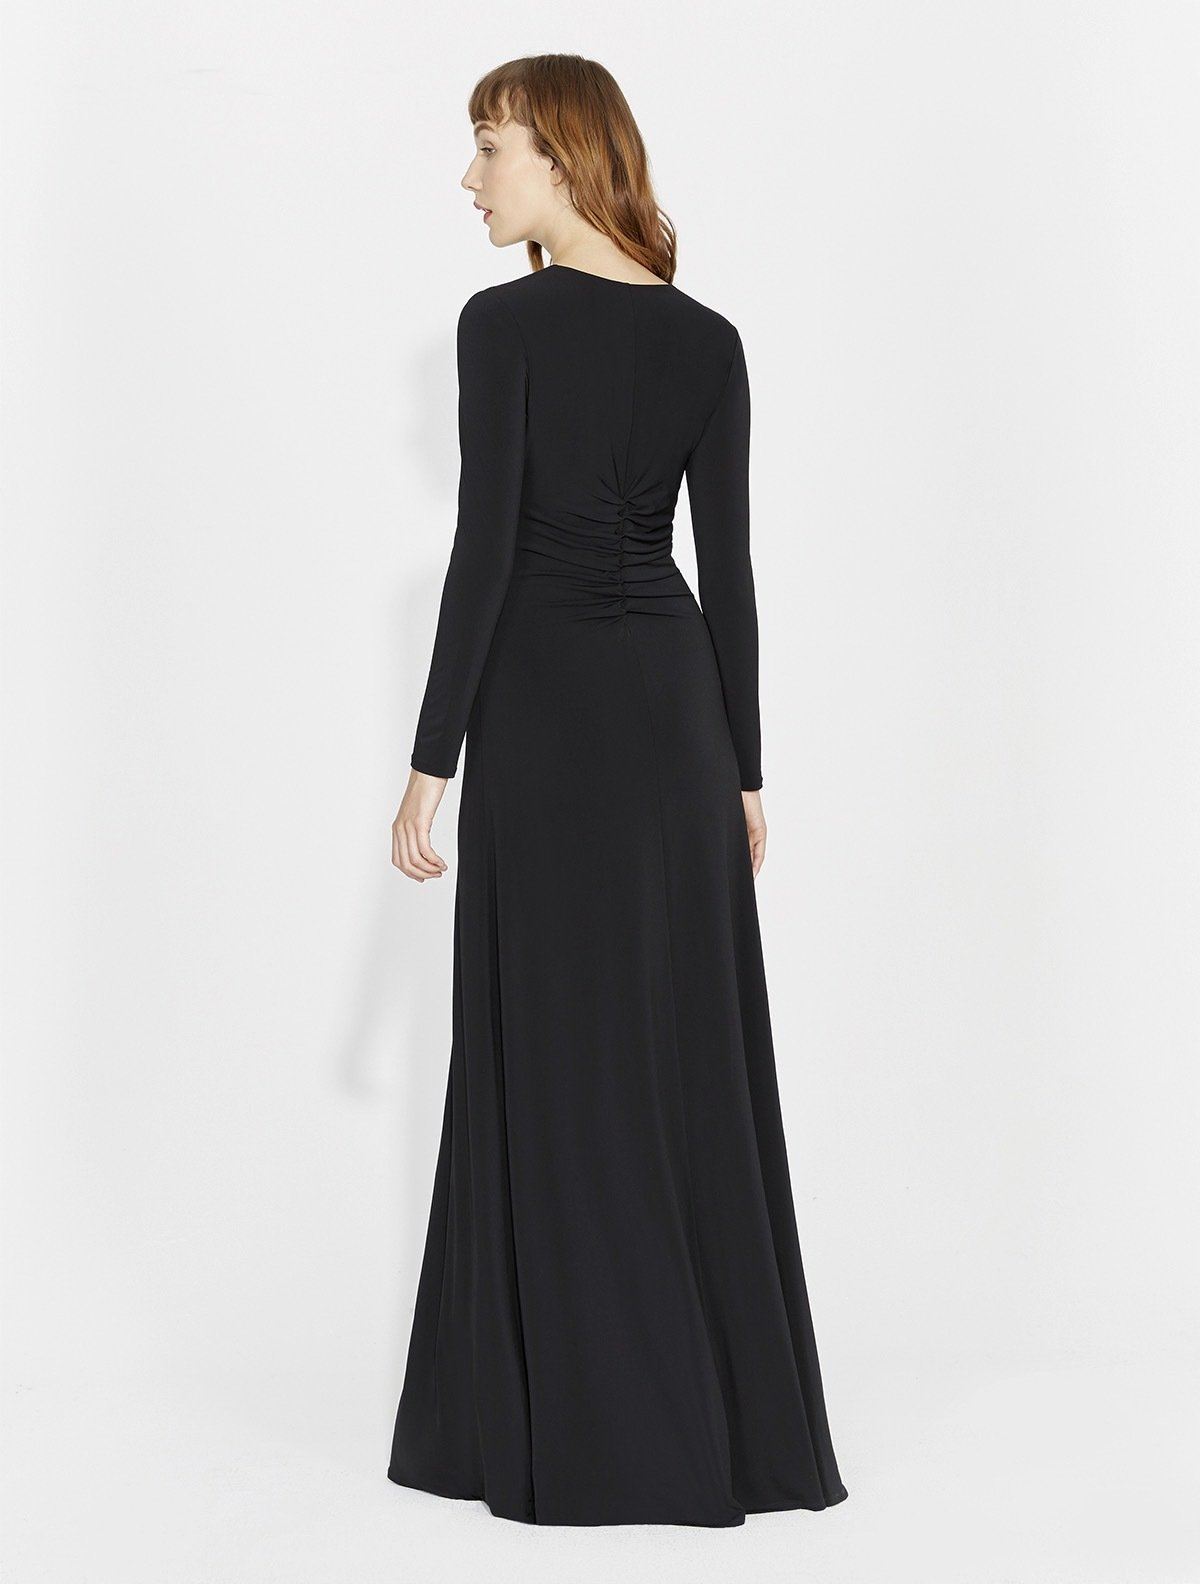 LONG SLEEVE RUCHED FRONT GOWN - Halston